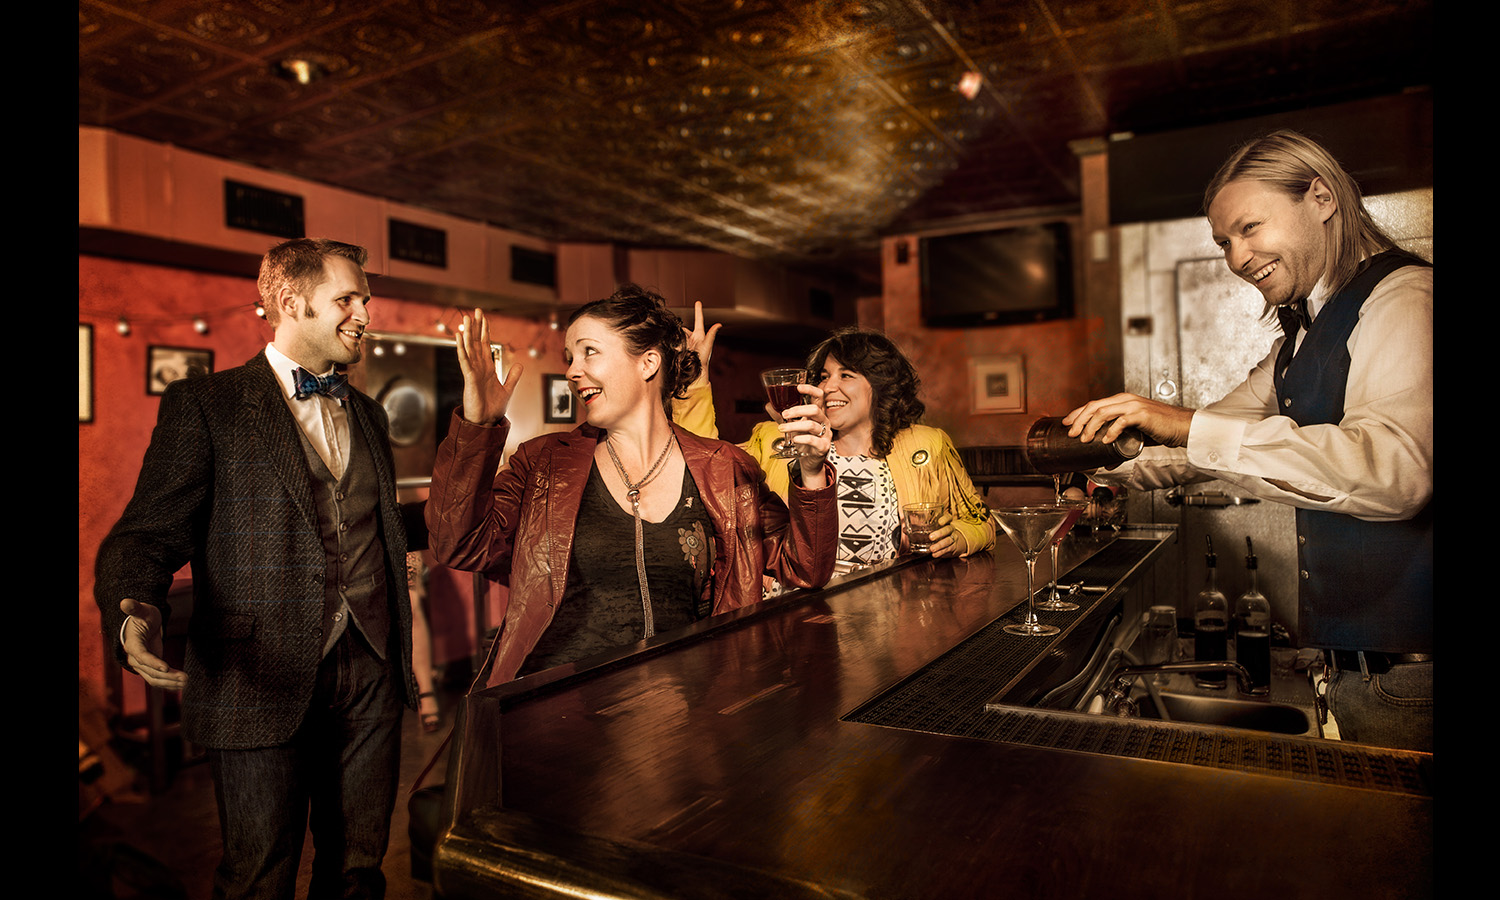 bar scene everyone happy Conceptual